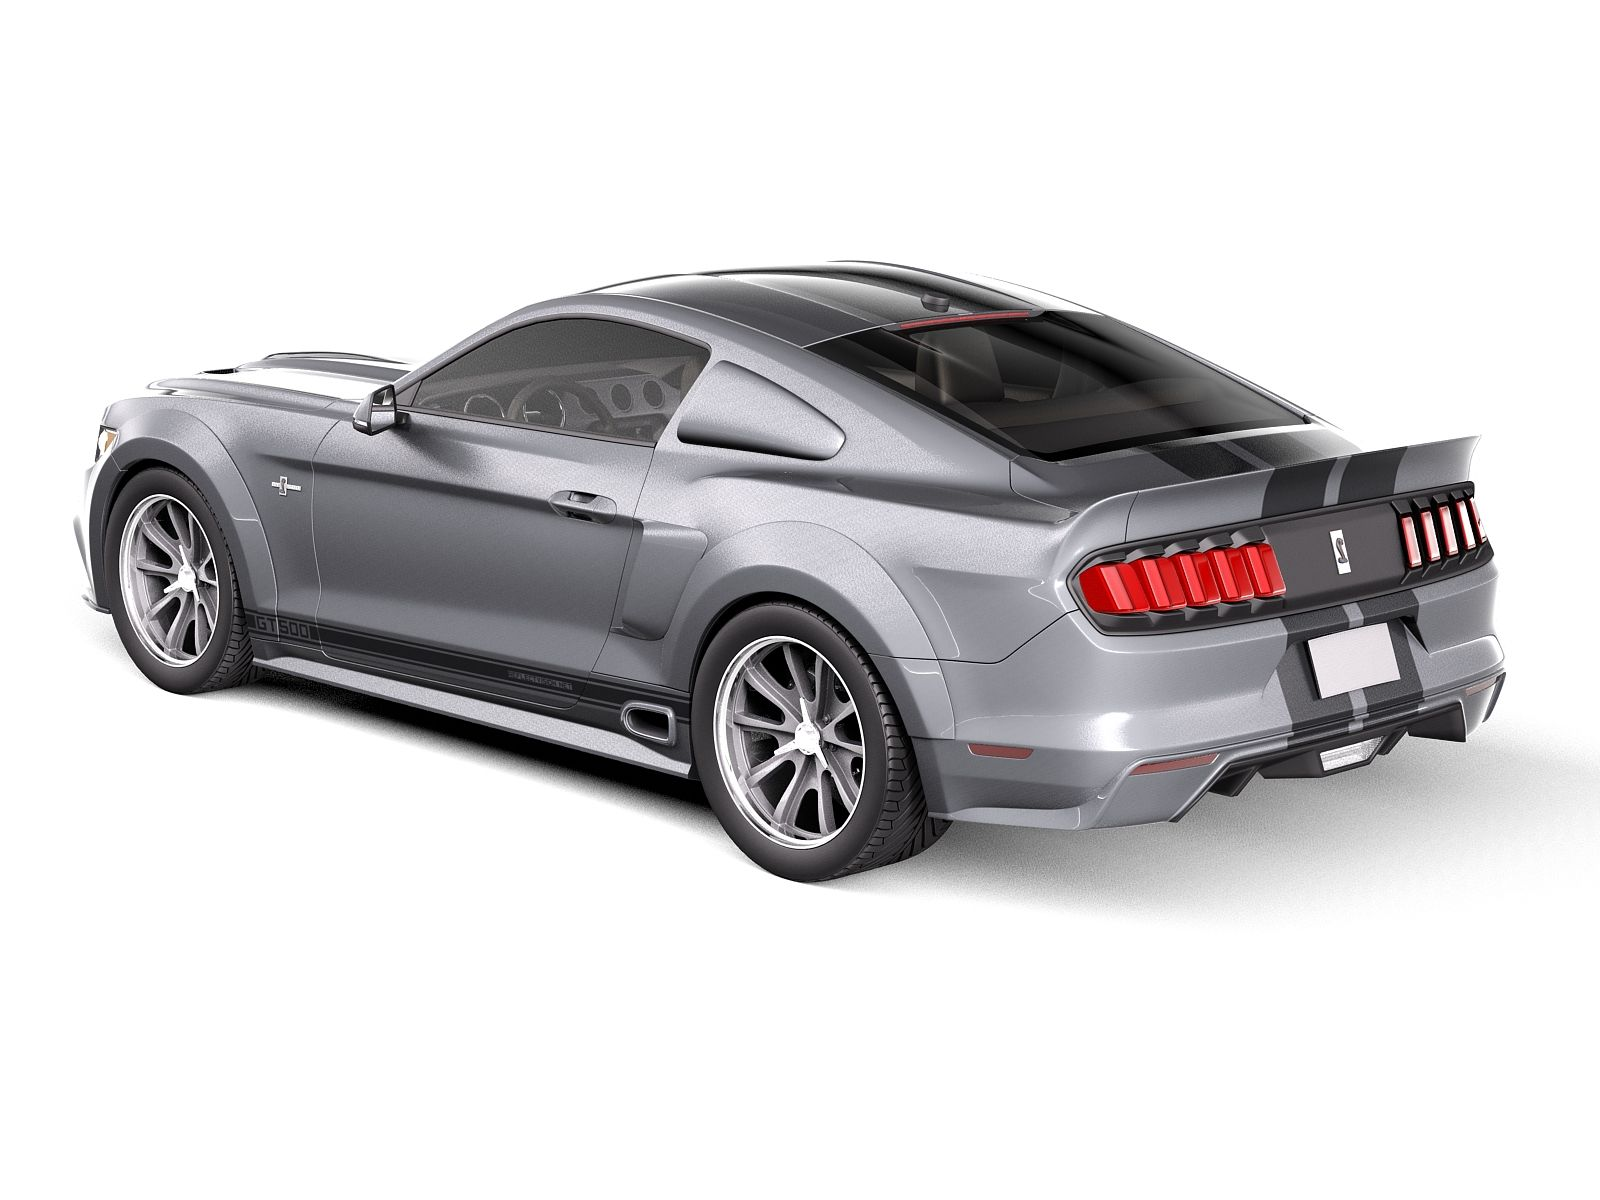 eleanor ford mustang gt500 shelby cobra 2015 3d model. Black Bedroom Furniture Sets. Home Design Ideas